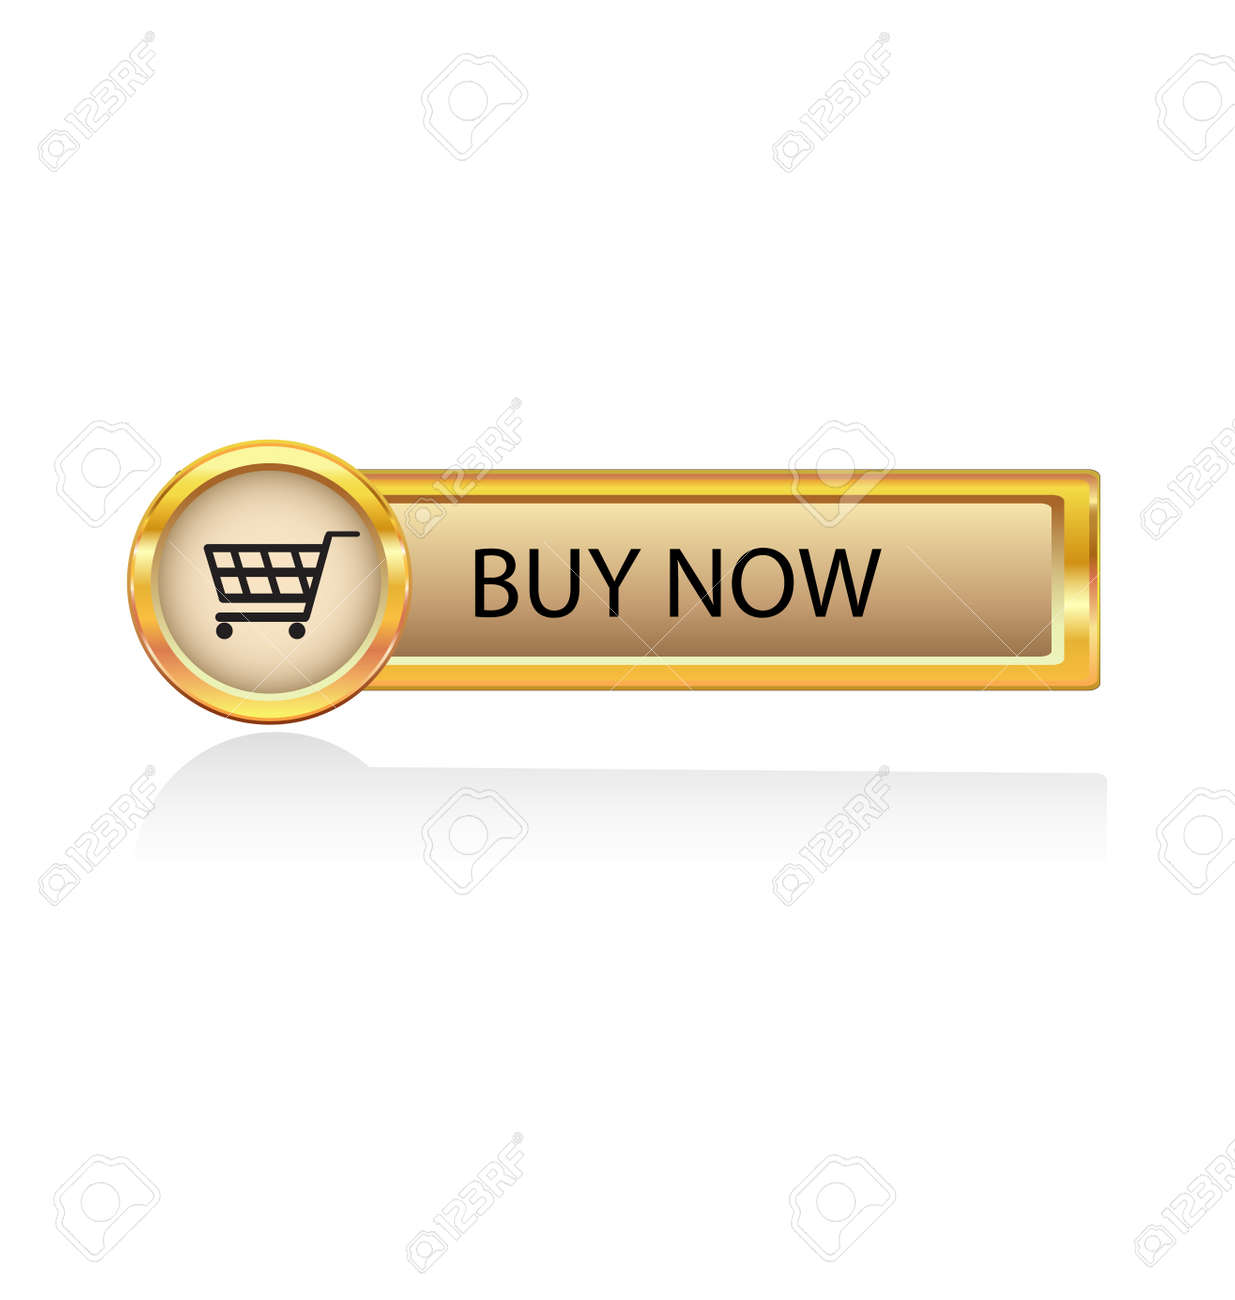 How to buy gold now - Gold Button With Buy Symbol Stock Vector 6486360